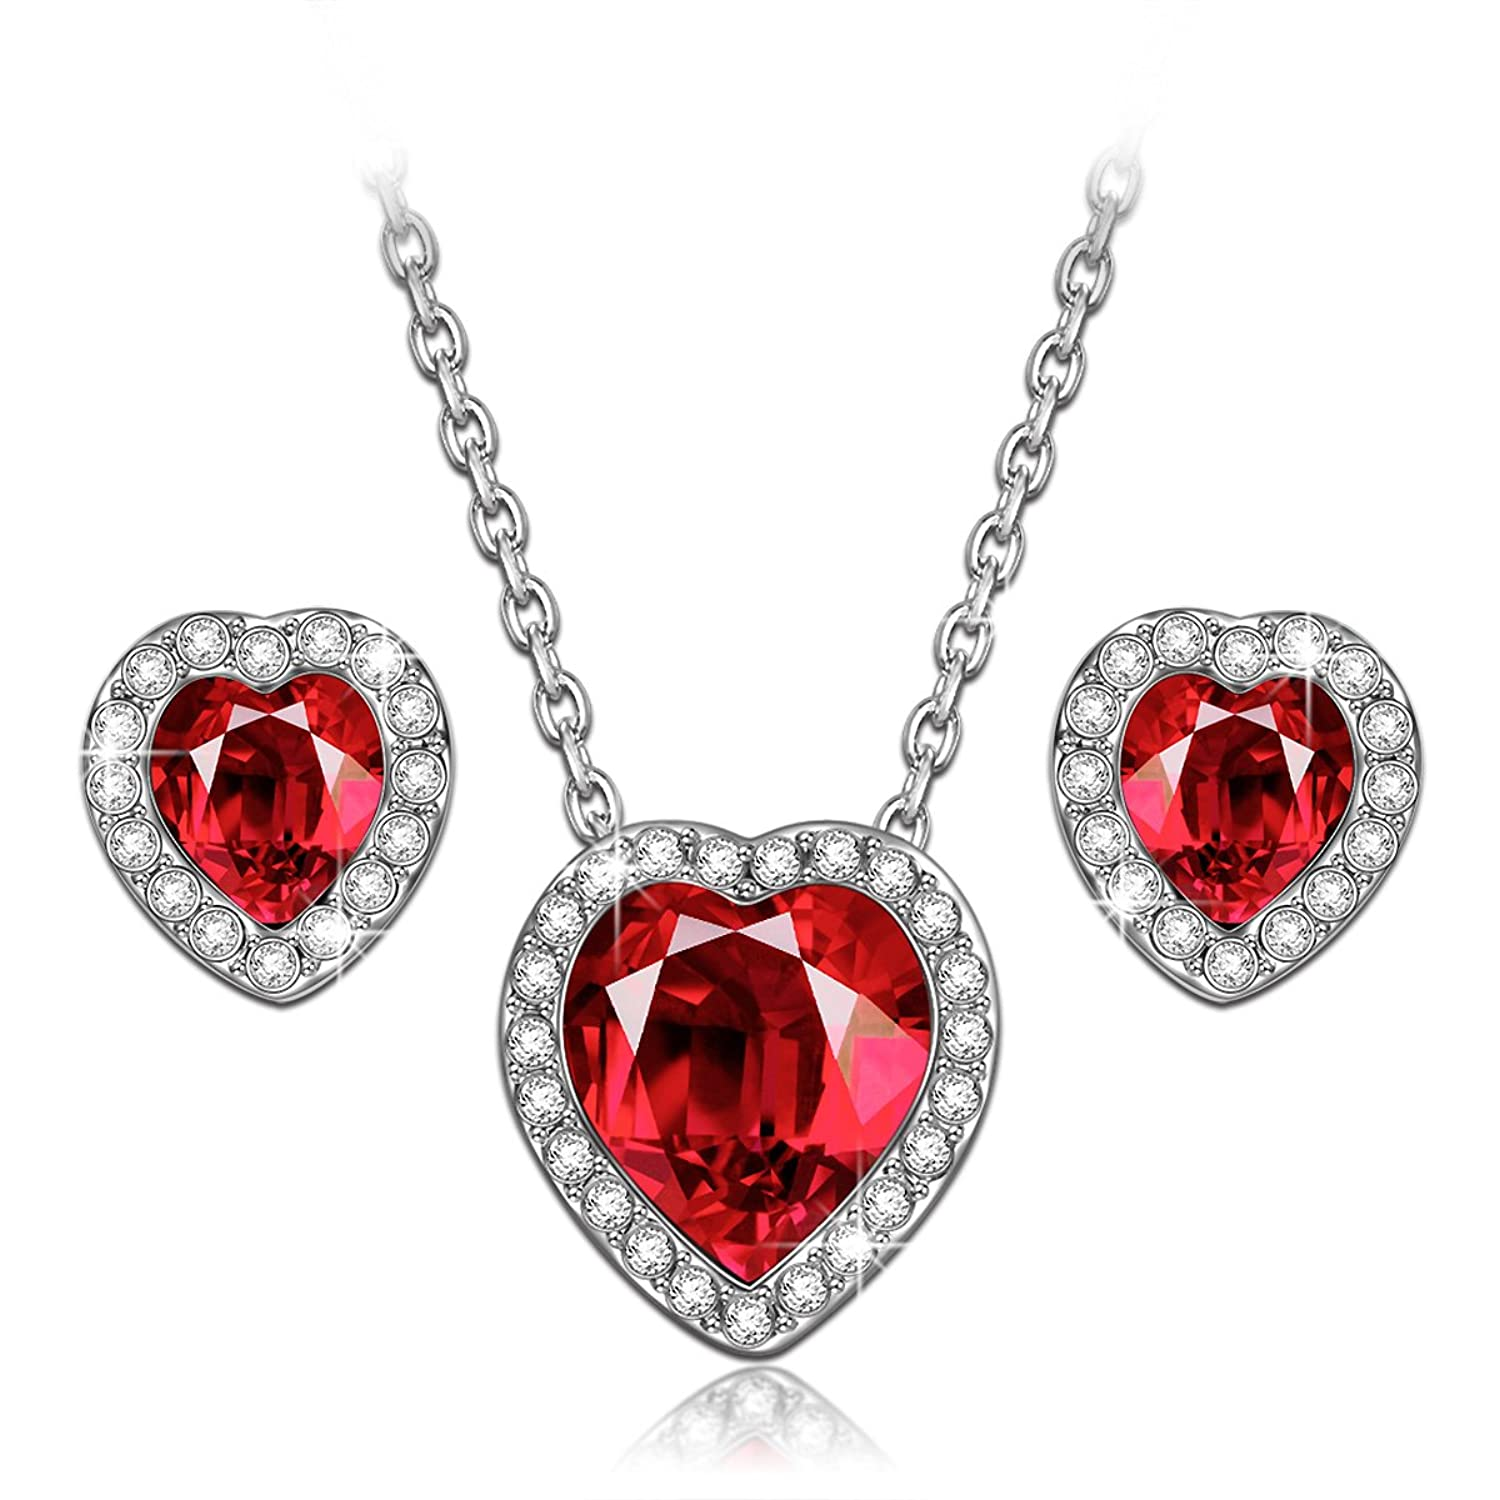 true love ruby heart necklace earrings jewelry set made. Black Bedroom Furniture Sets. Home Design Ideas